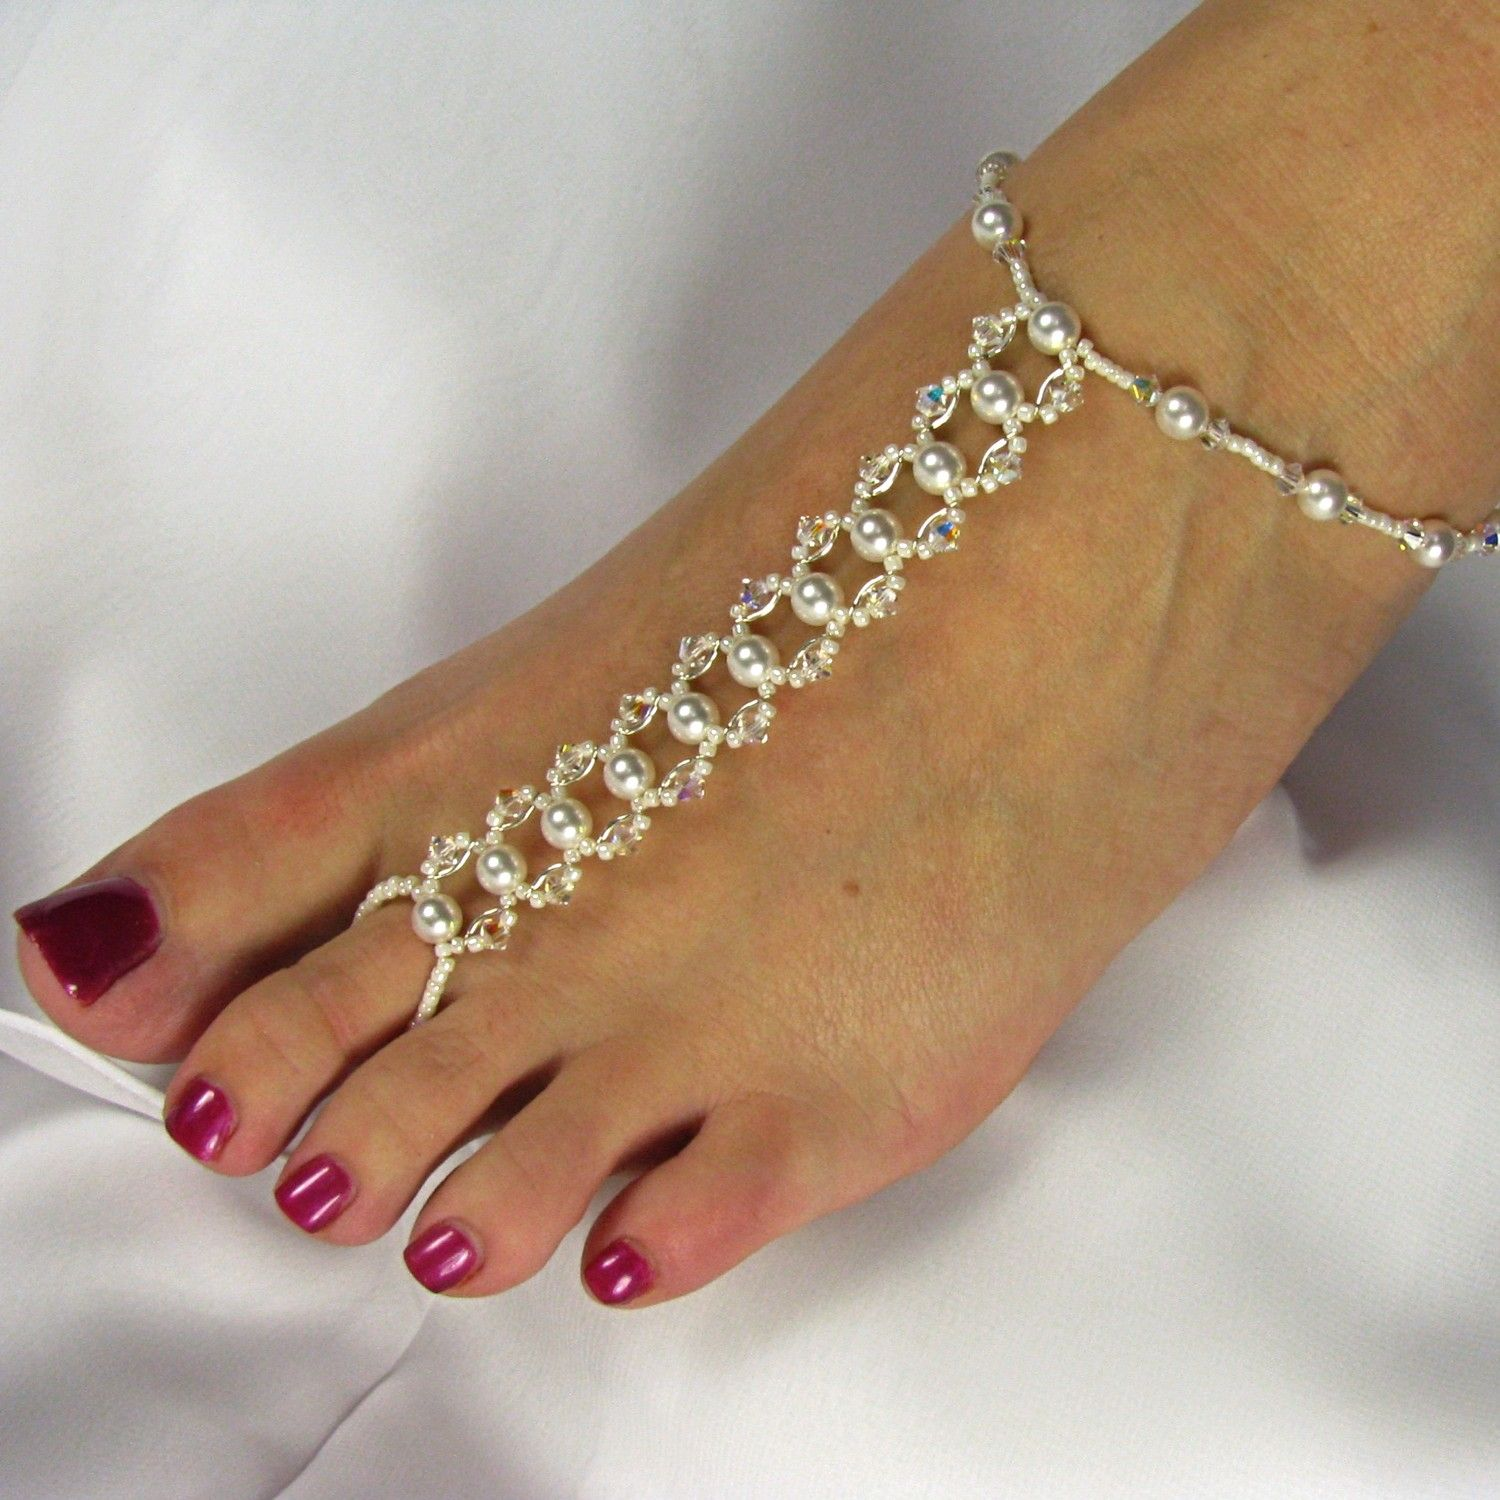 Beach wedding foot jewelry  Beach wedding perfection  Barefoot sandals that I Liked